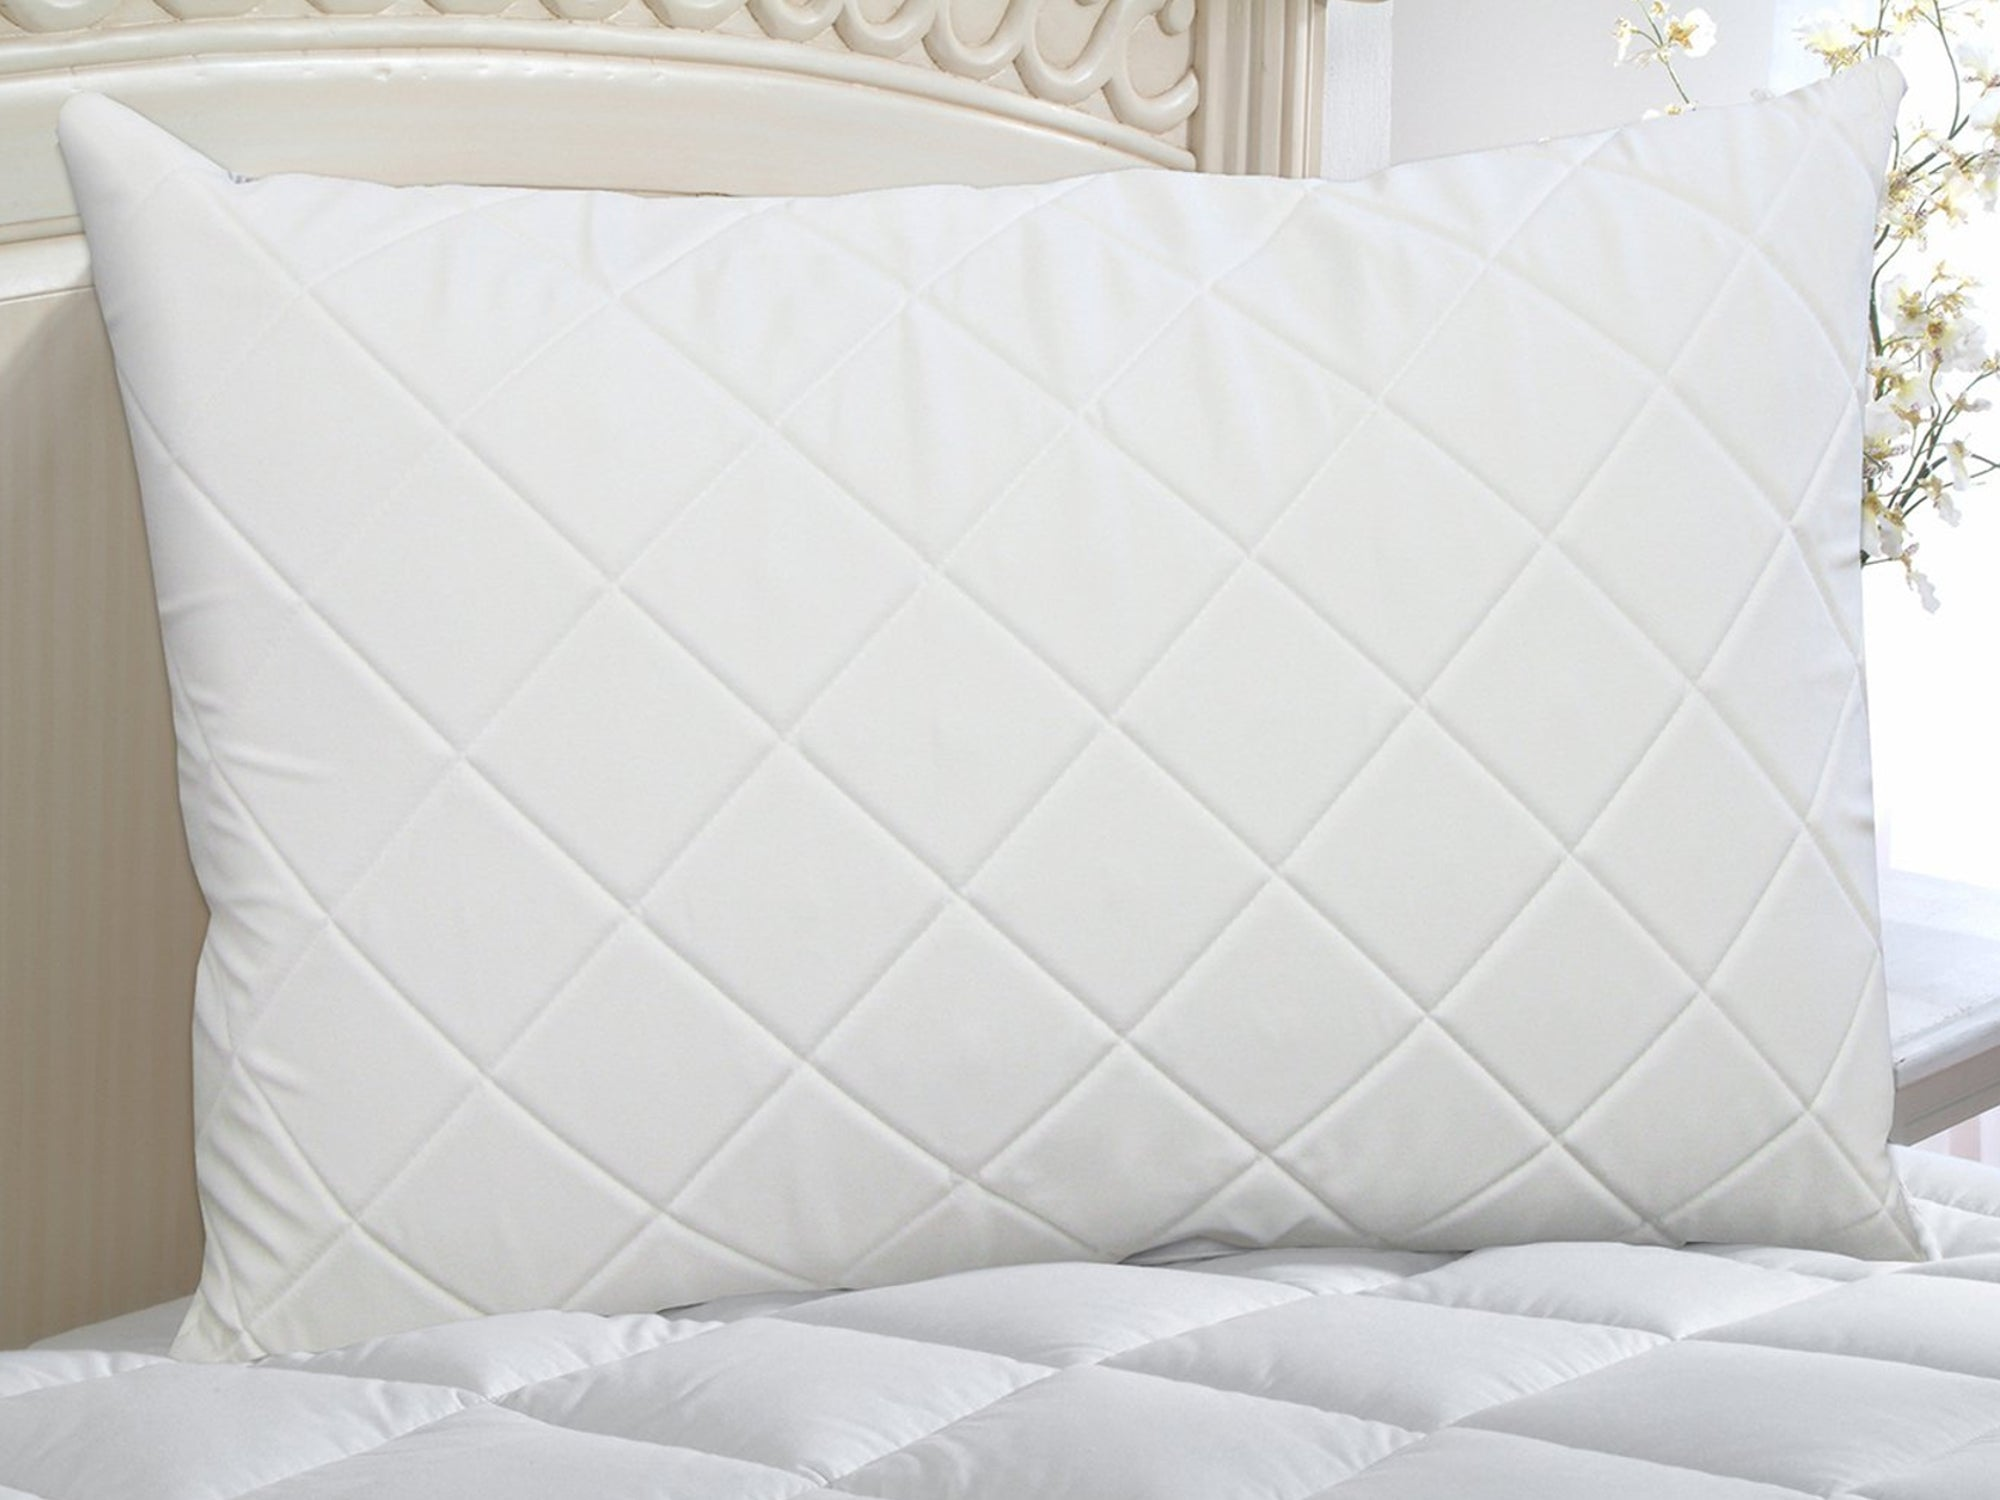 Luxury Quilted Memory Foam Pillow